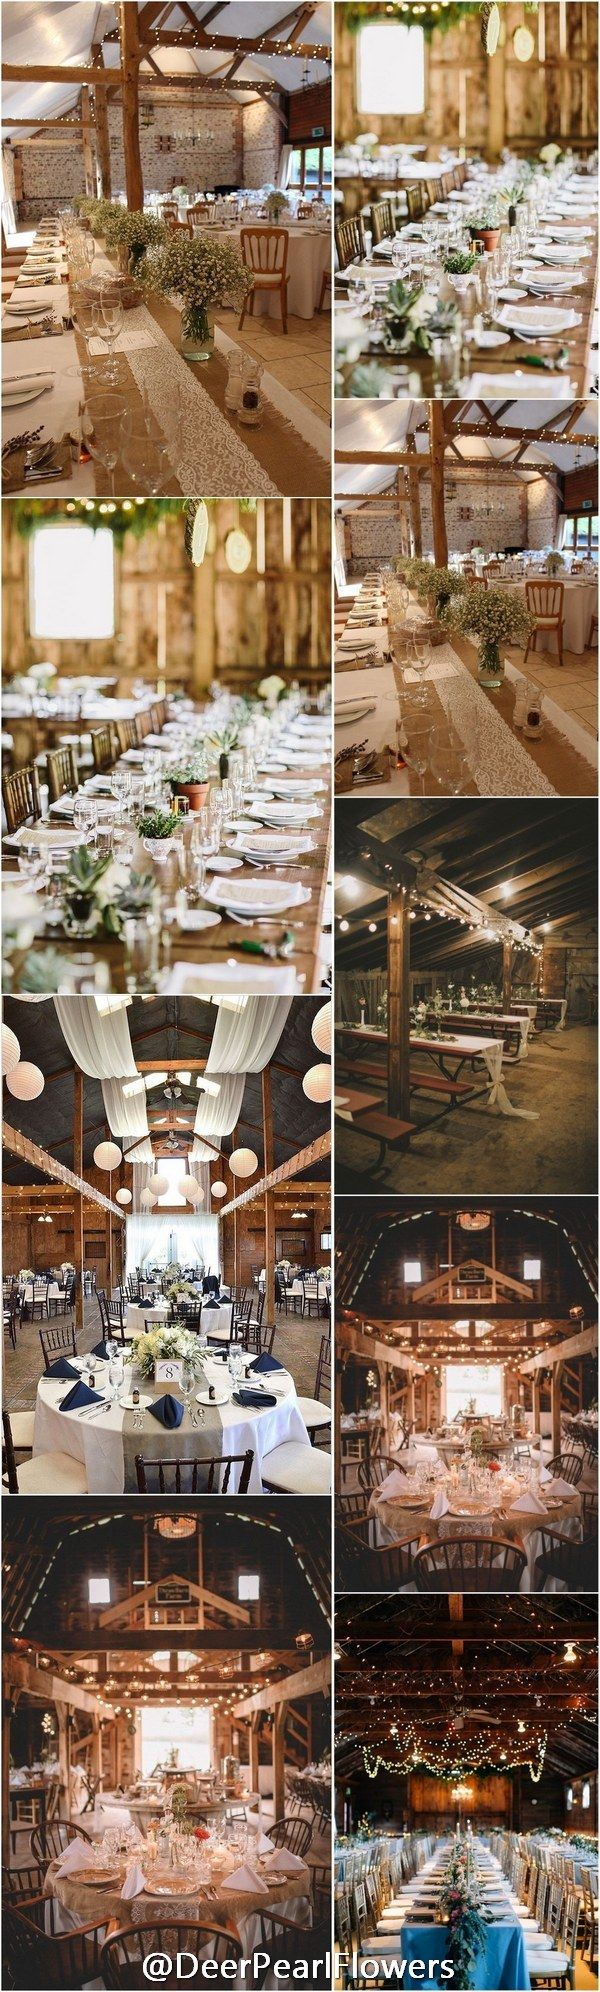 Rustic country barn wedding reception table decor / http://www.deerpearlflowers.com/barn-wedding-reception-table-decoration/